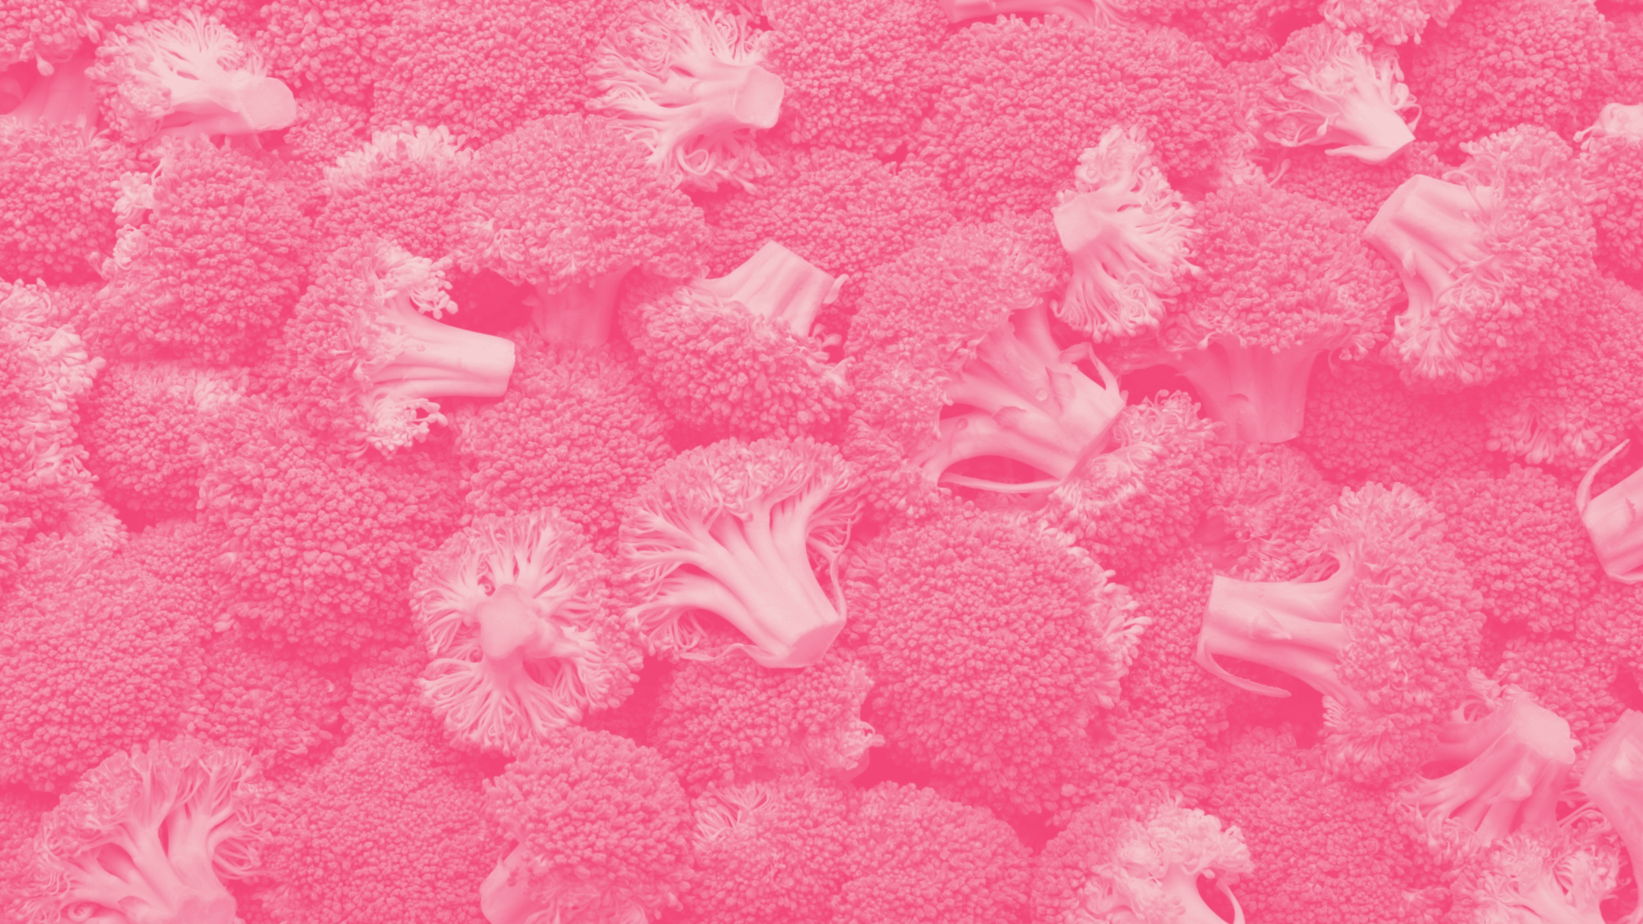 Broccoli in a pink overtone